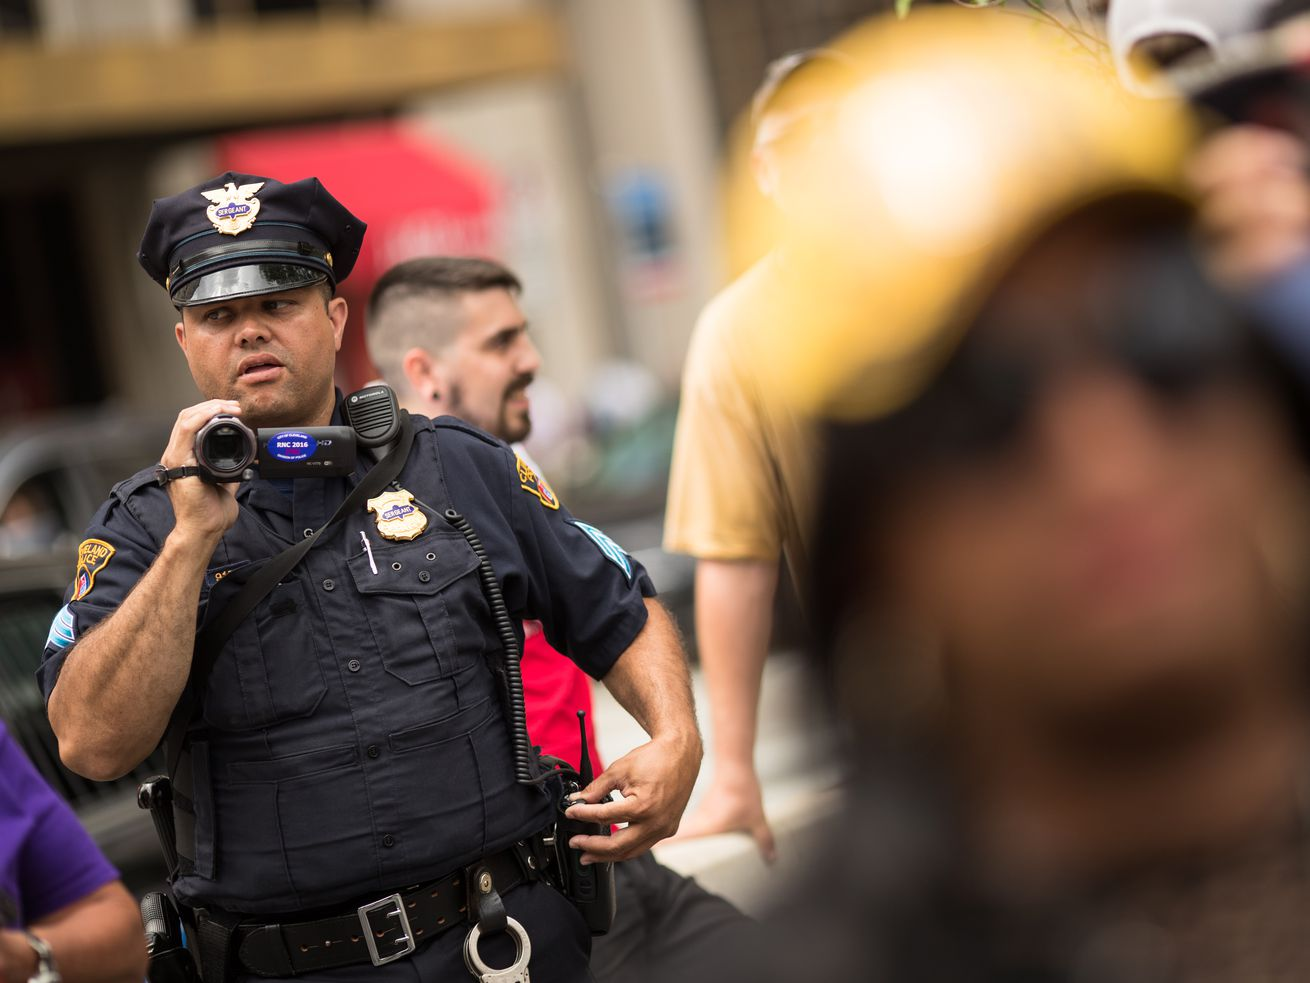 A police officer holds a camera and looks at a crowd.